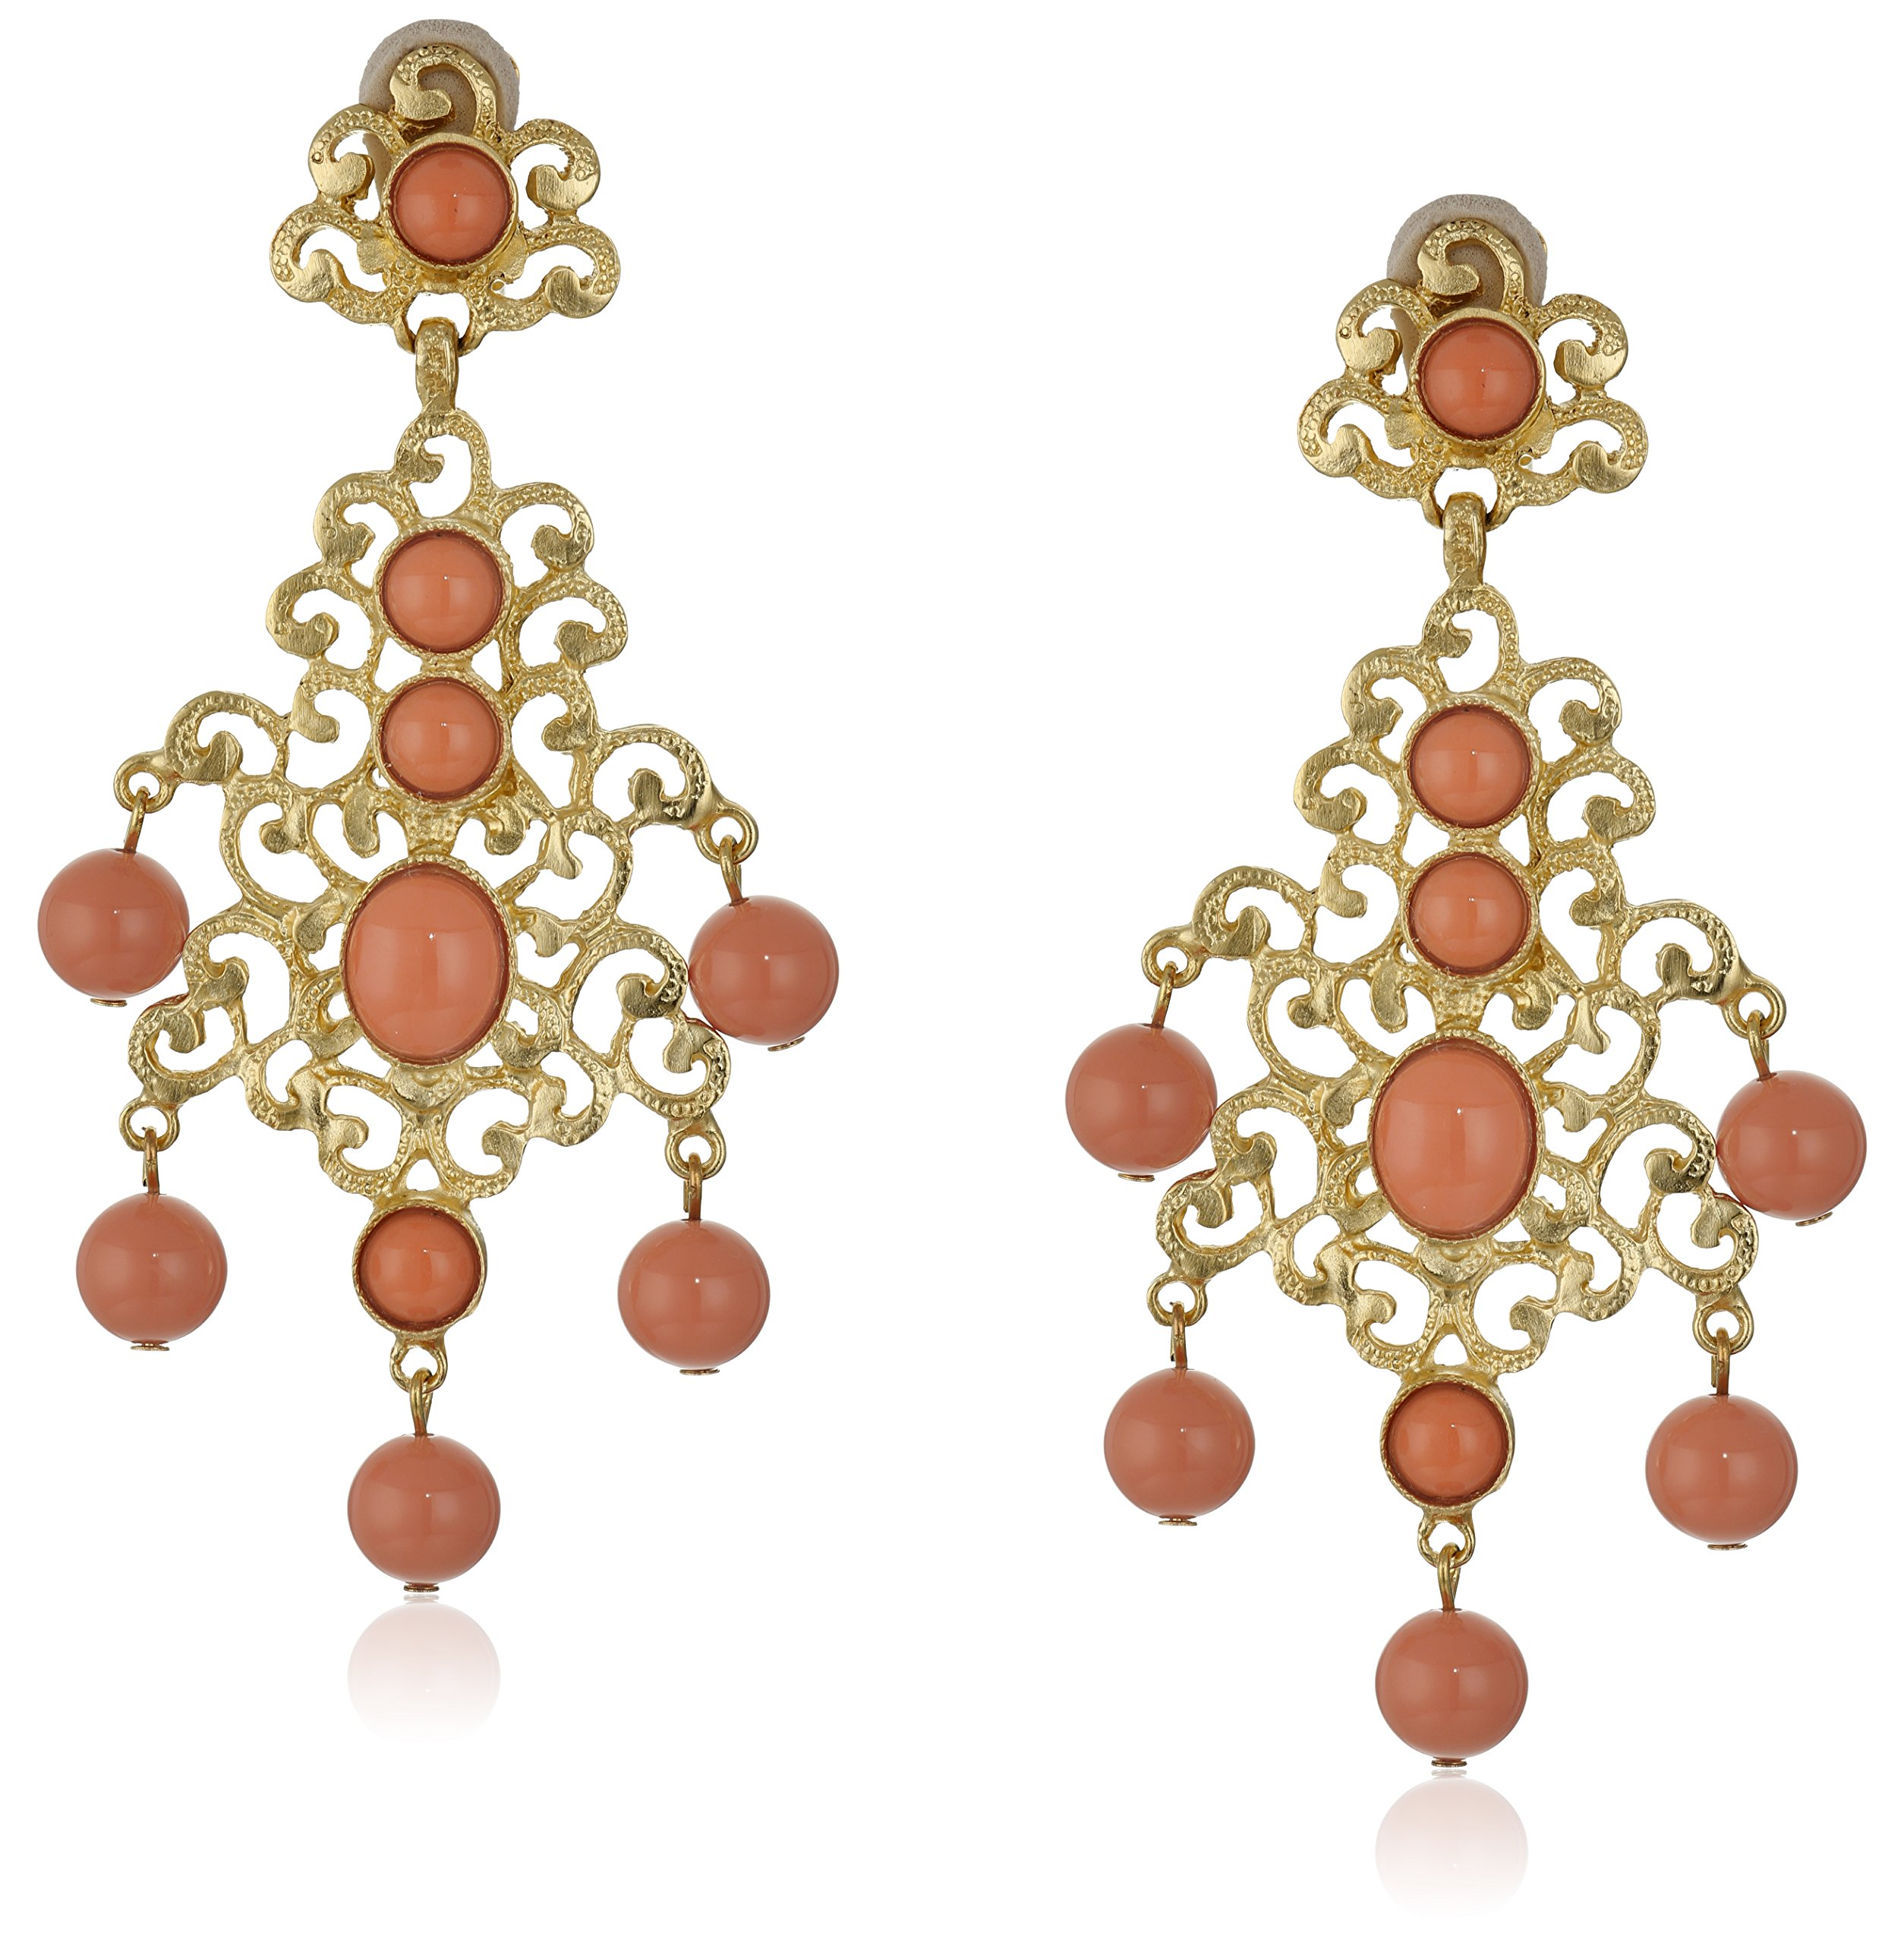 Kenneth Jay Lane Gold-Tone Filigree Earrings with Coral Drops